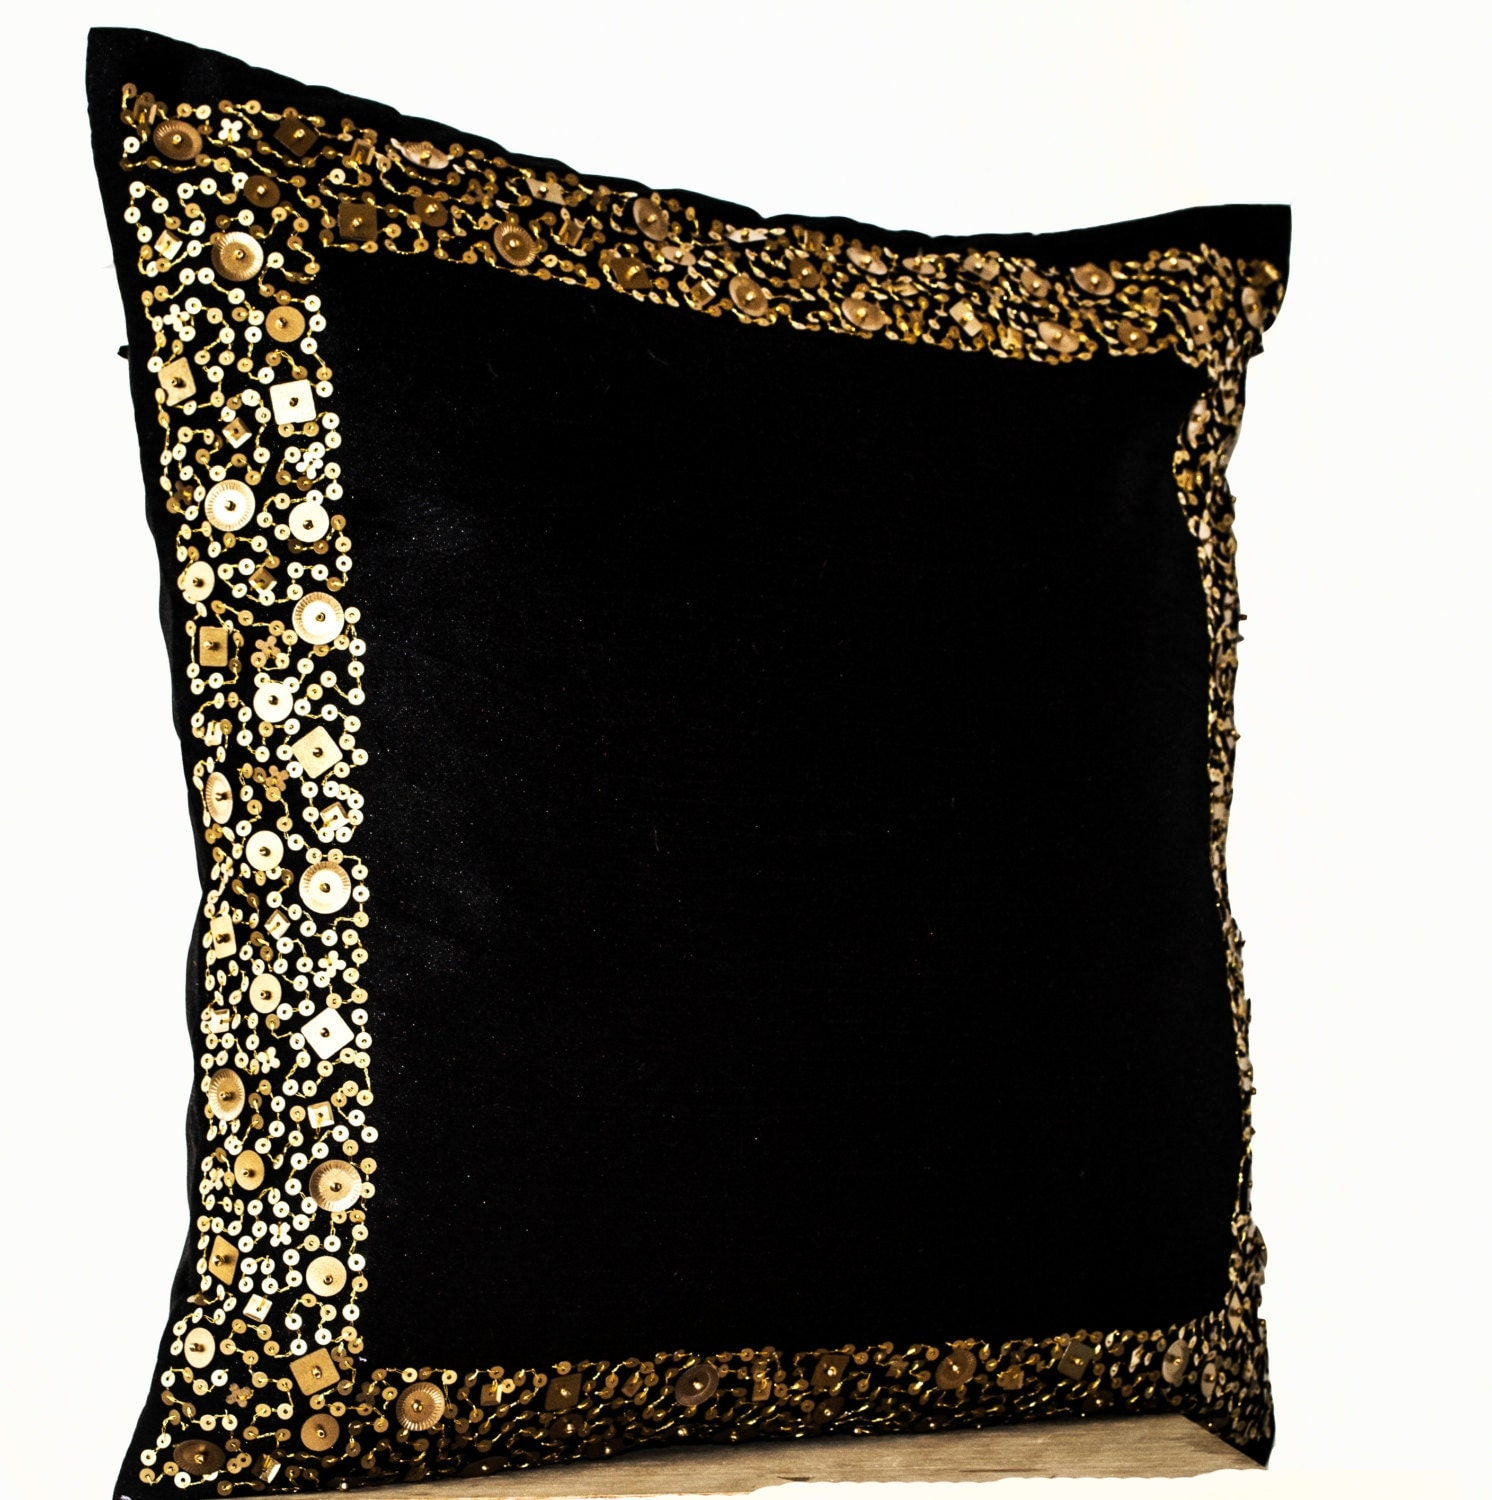 Decorative Pillow Black : Decorative Throw Pillows Black cushion with gold sequin